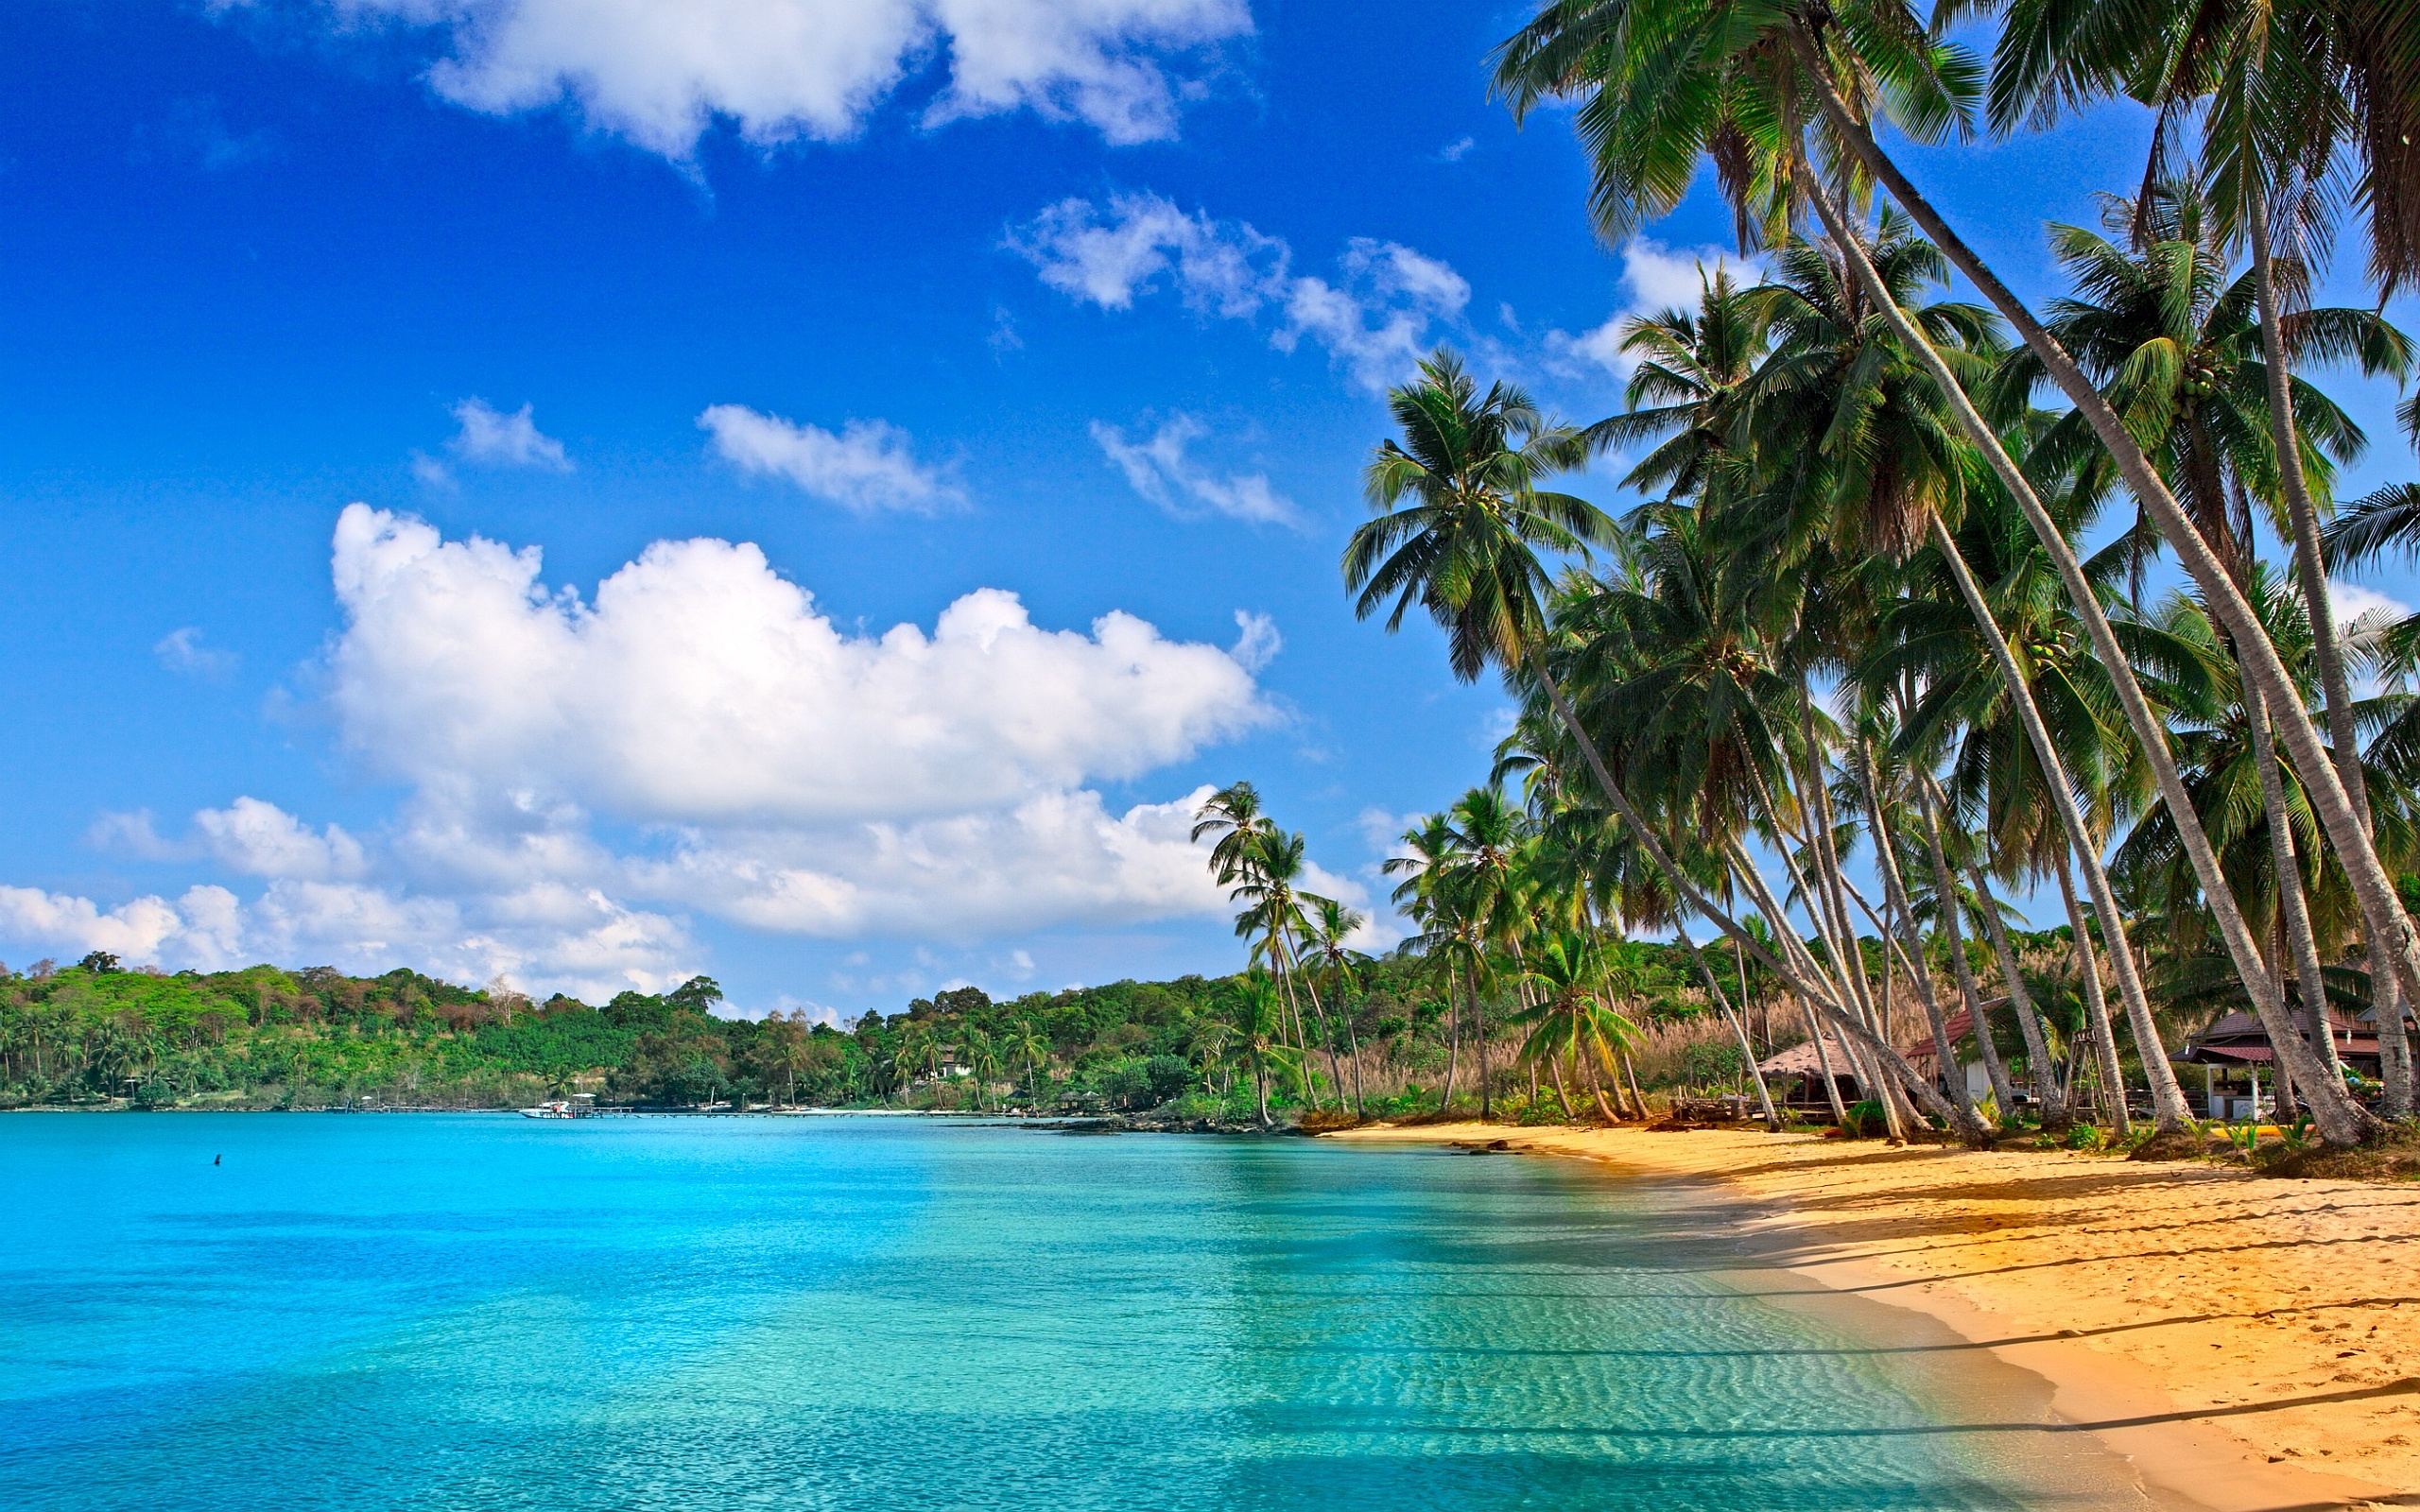 tropical beach images pc